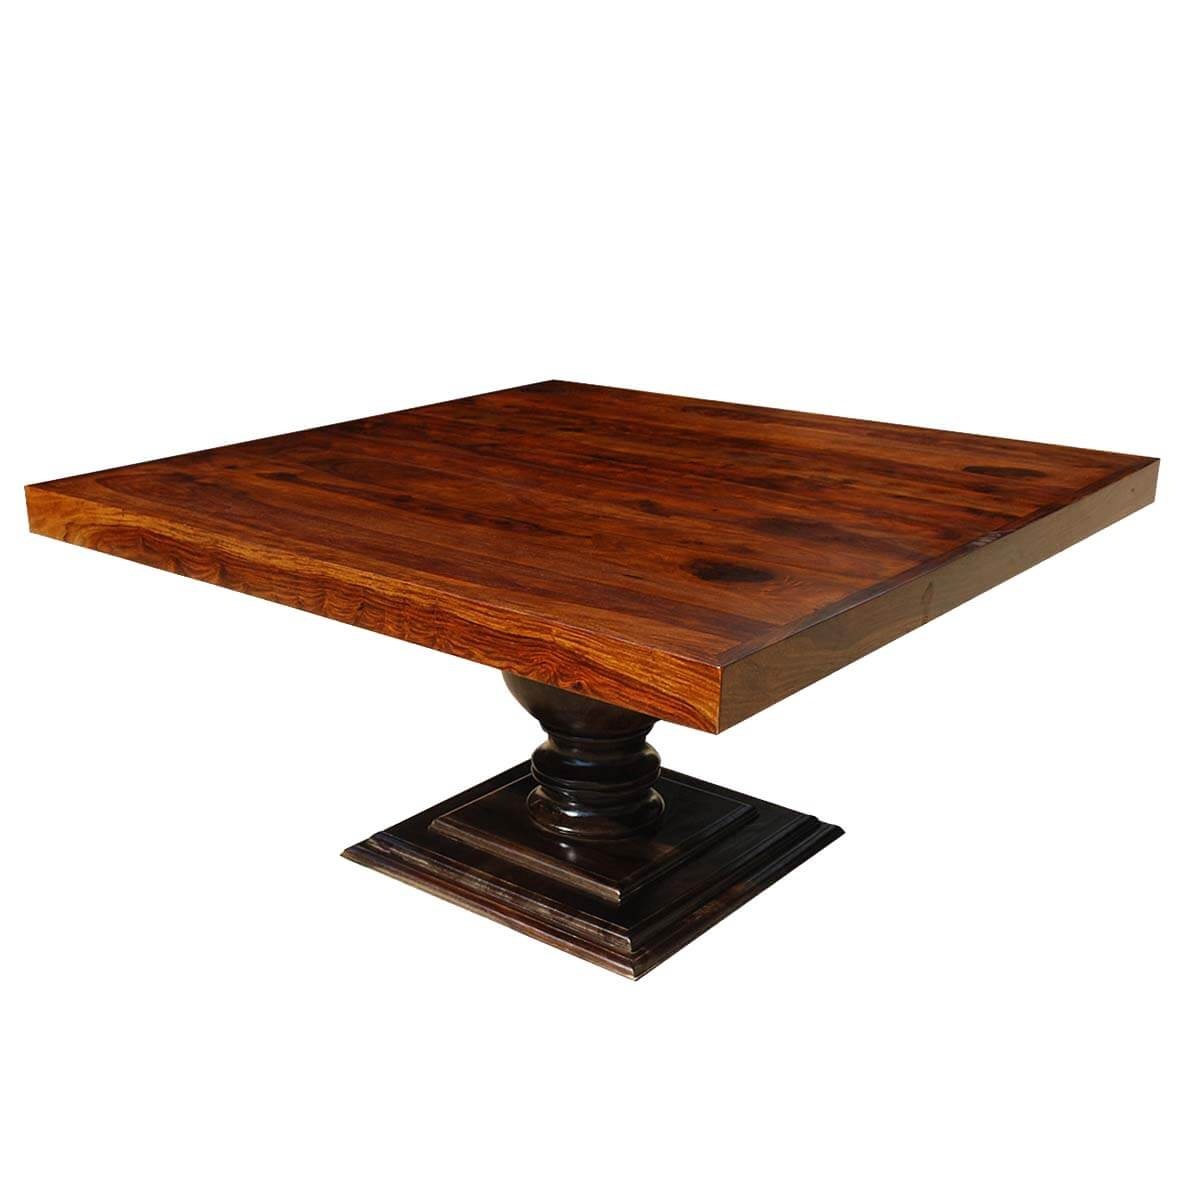 Tables rustic solid wood trestle pedestal base harvest dining table - Minneapolis Rustic Solid Wood Fusion Pedestal Square Dining Table